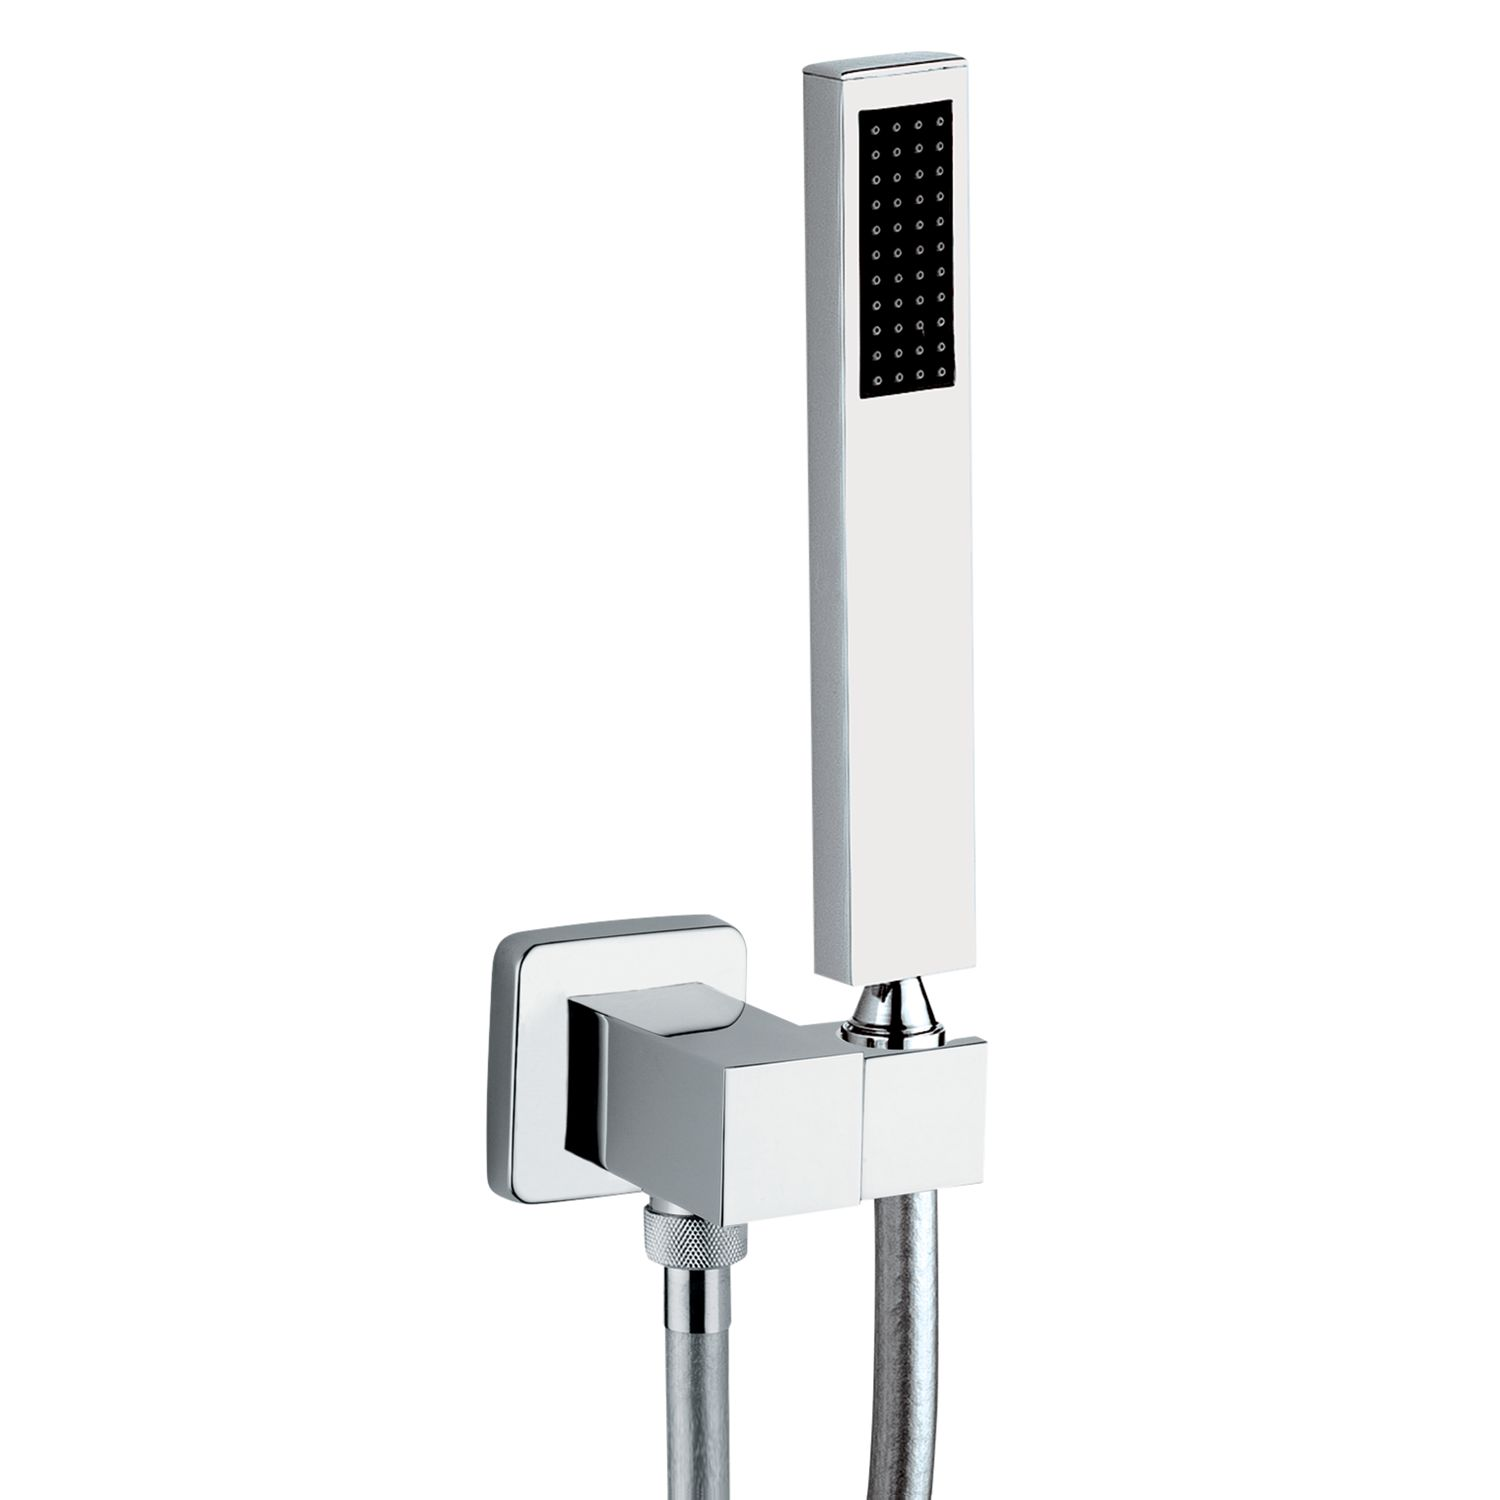 Abode Abode Euphoria Square Combined Wall Outlet, Hose, Handshower and Bracket Kit